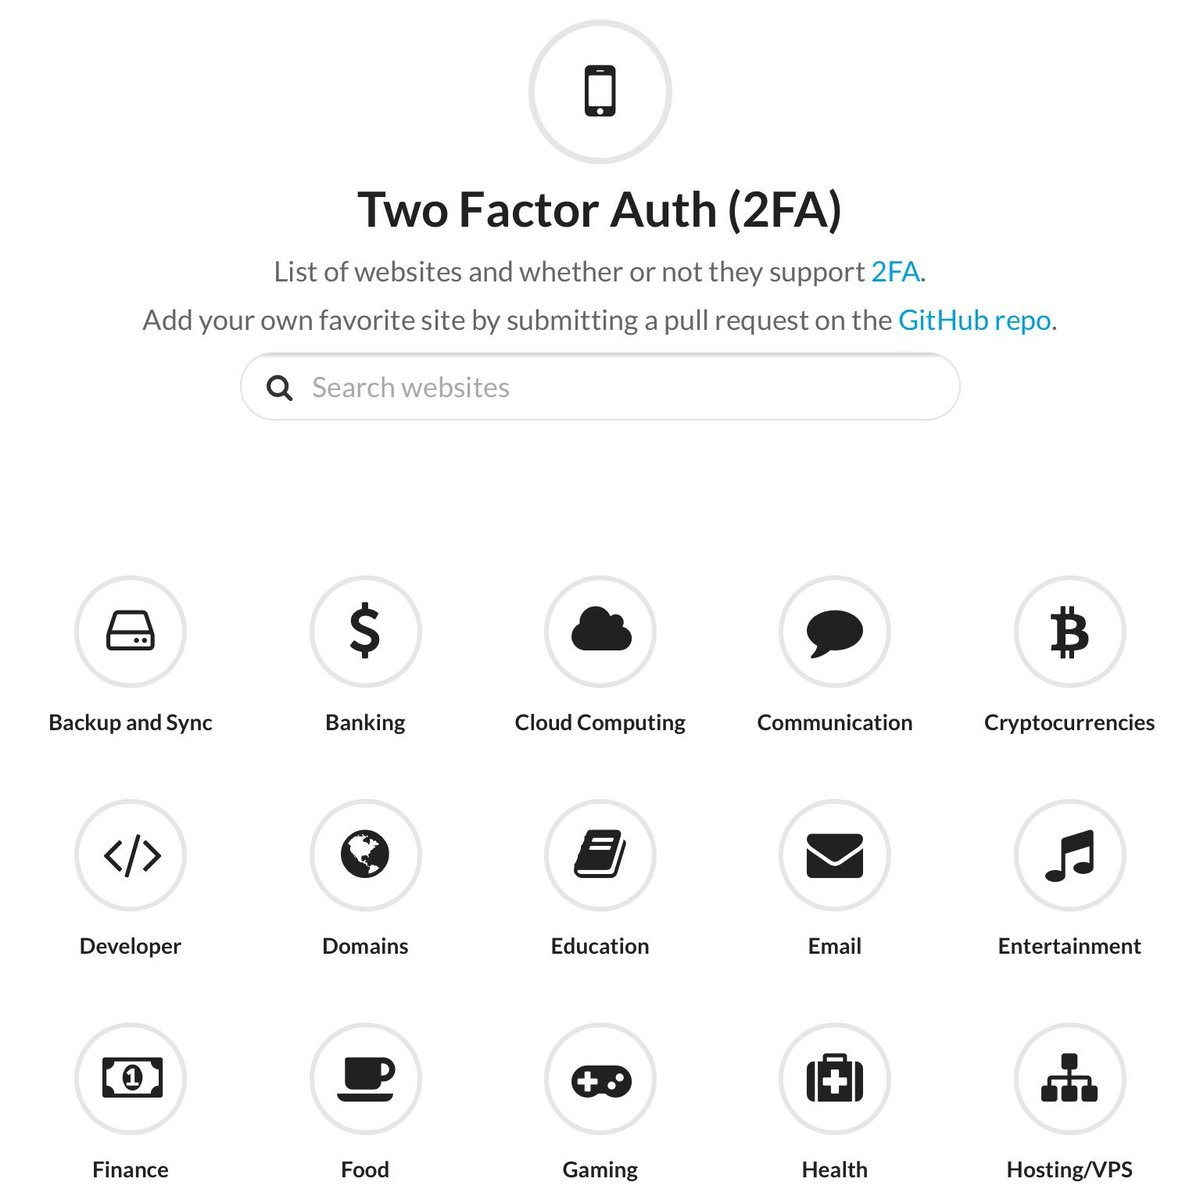 List of websites and whether or not they support 2FA. https://t.co/4g0krSOT1N https://t.co/gnWF2DAhWn